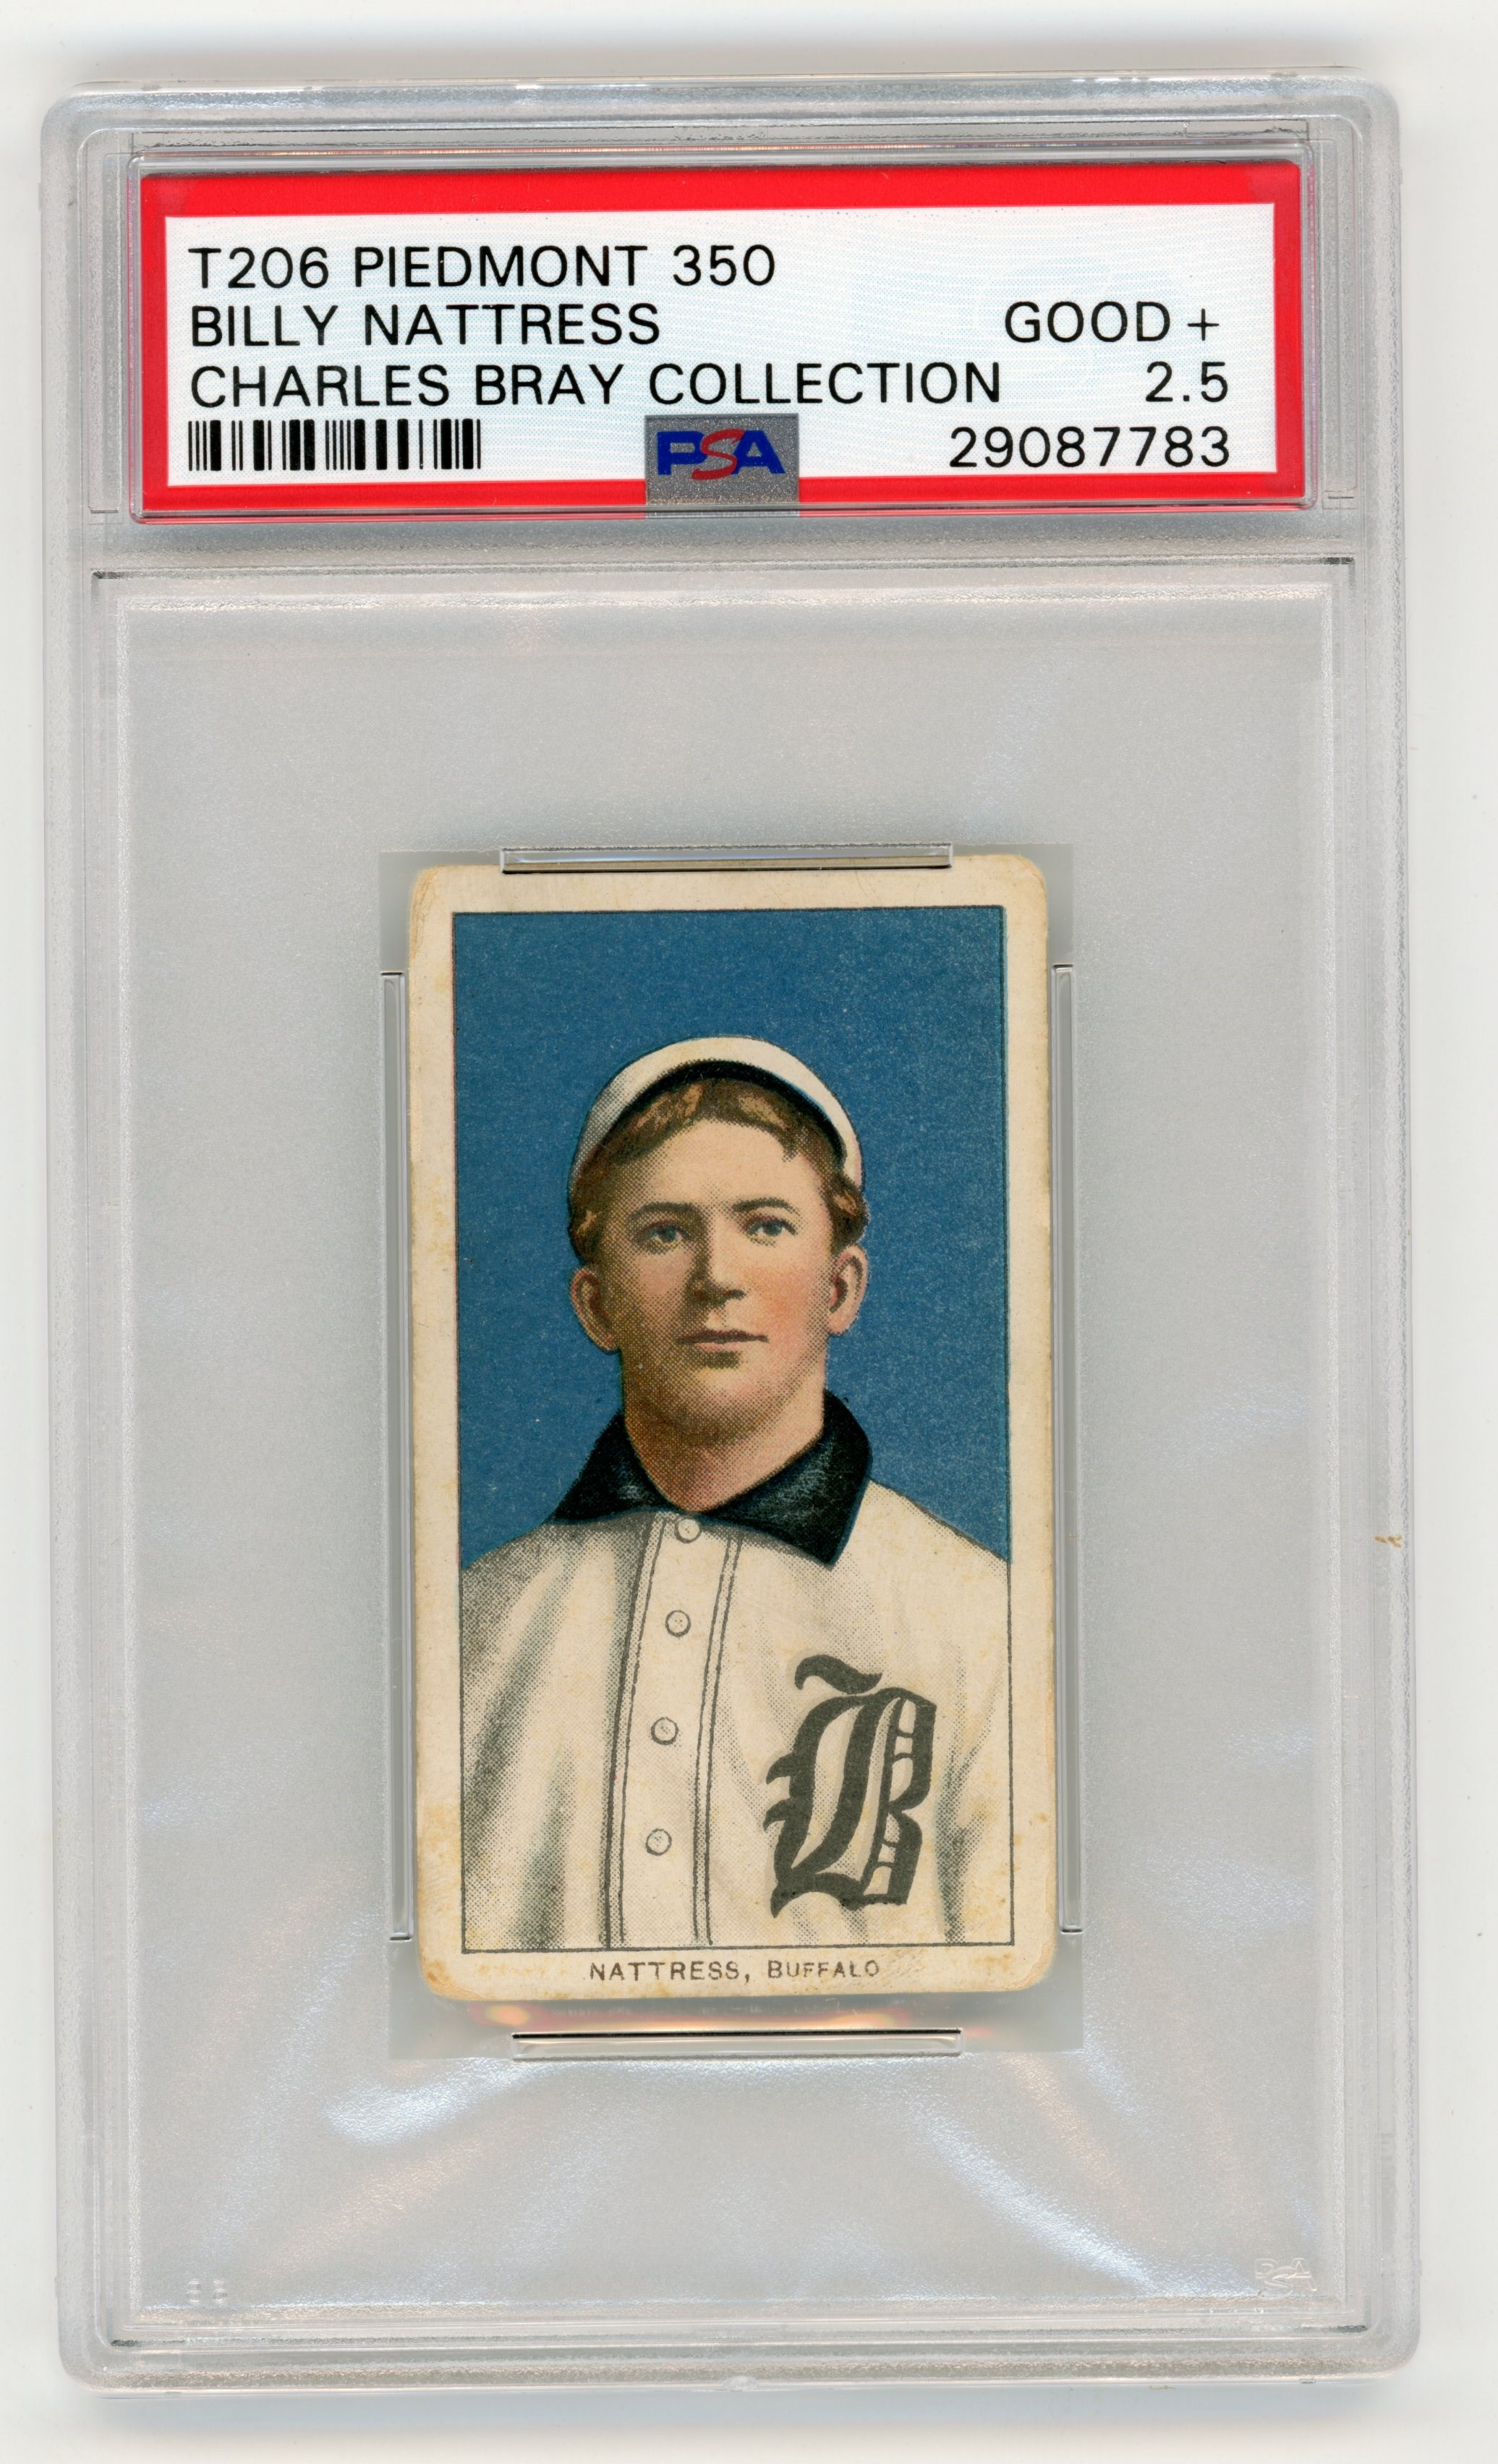 T206 Piedmont 350 Billy Nattress PSA GOOD+ 2.5 From the Charles Bray Collection.